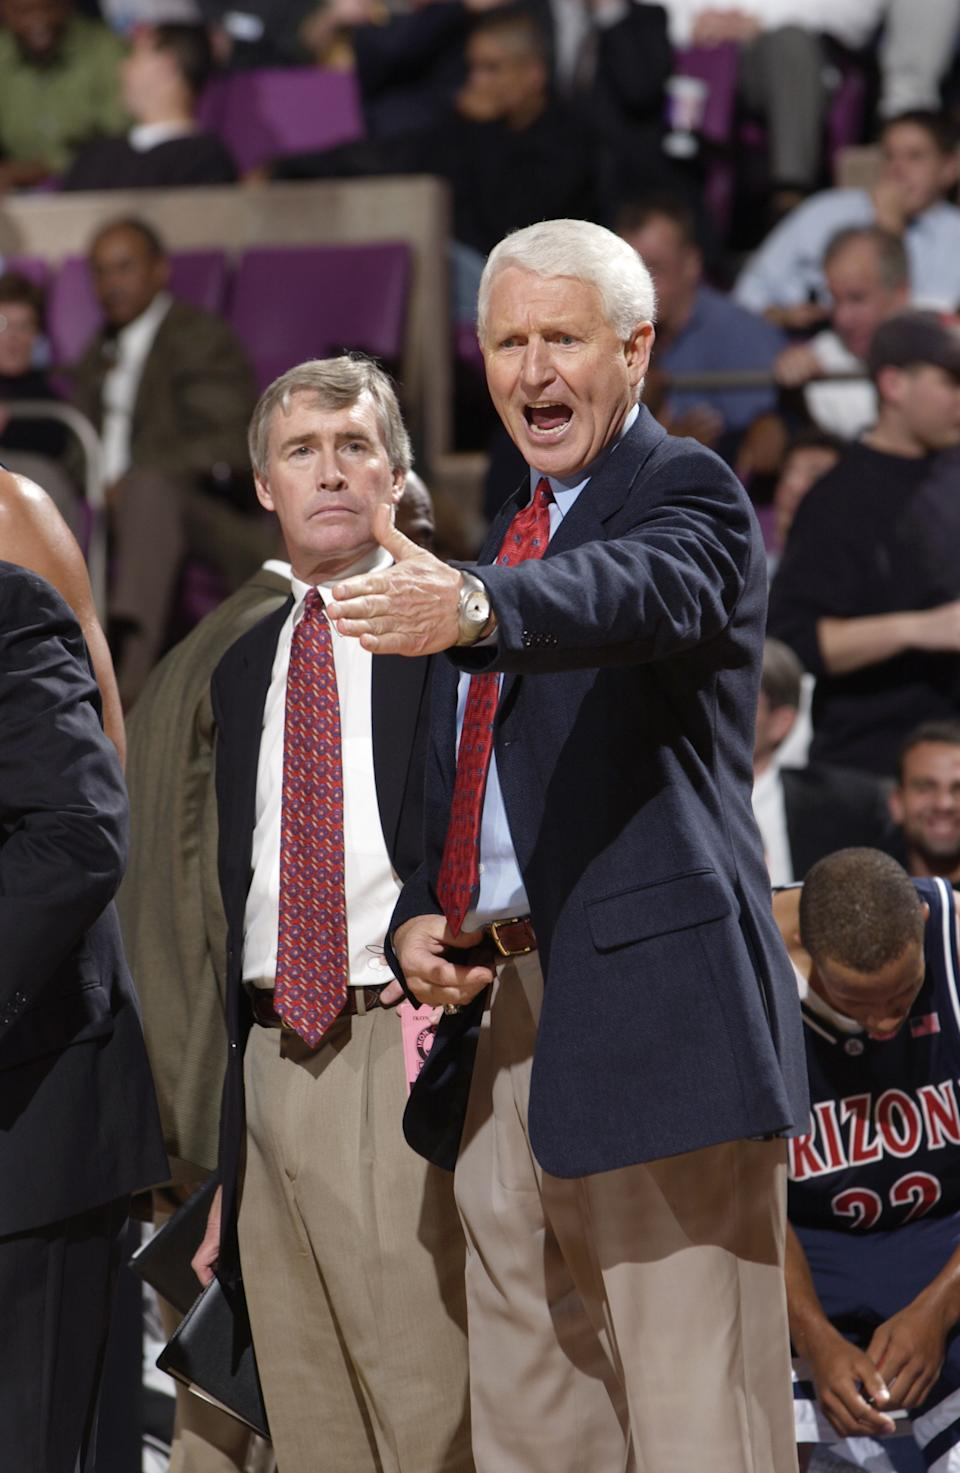 Lute Olson, the longtime coach of the Arizona Wildcats who turned the program from a Pac-12 also-ran into a traditional power and eventual national champion, died at age 85. Before coaching in Tucson, Olson also coached at Long Beach City College and Iowa, where he left a successful Hawkeyes program to gamble on the Wildcats. It paid off, as he became the winningest coach in program history and earned a spot in the Hall of Fame.